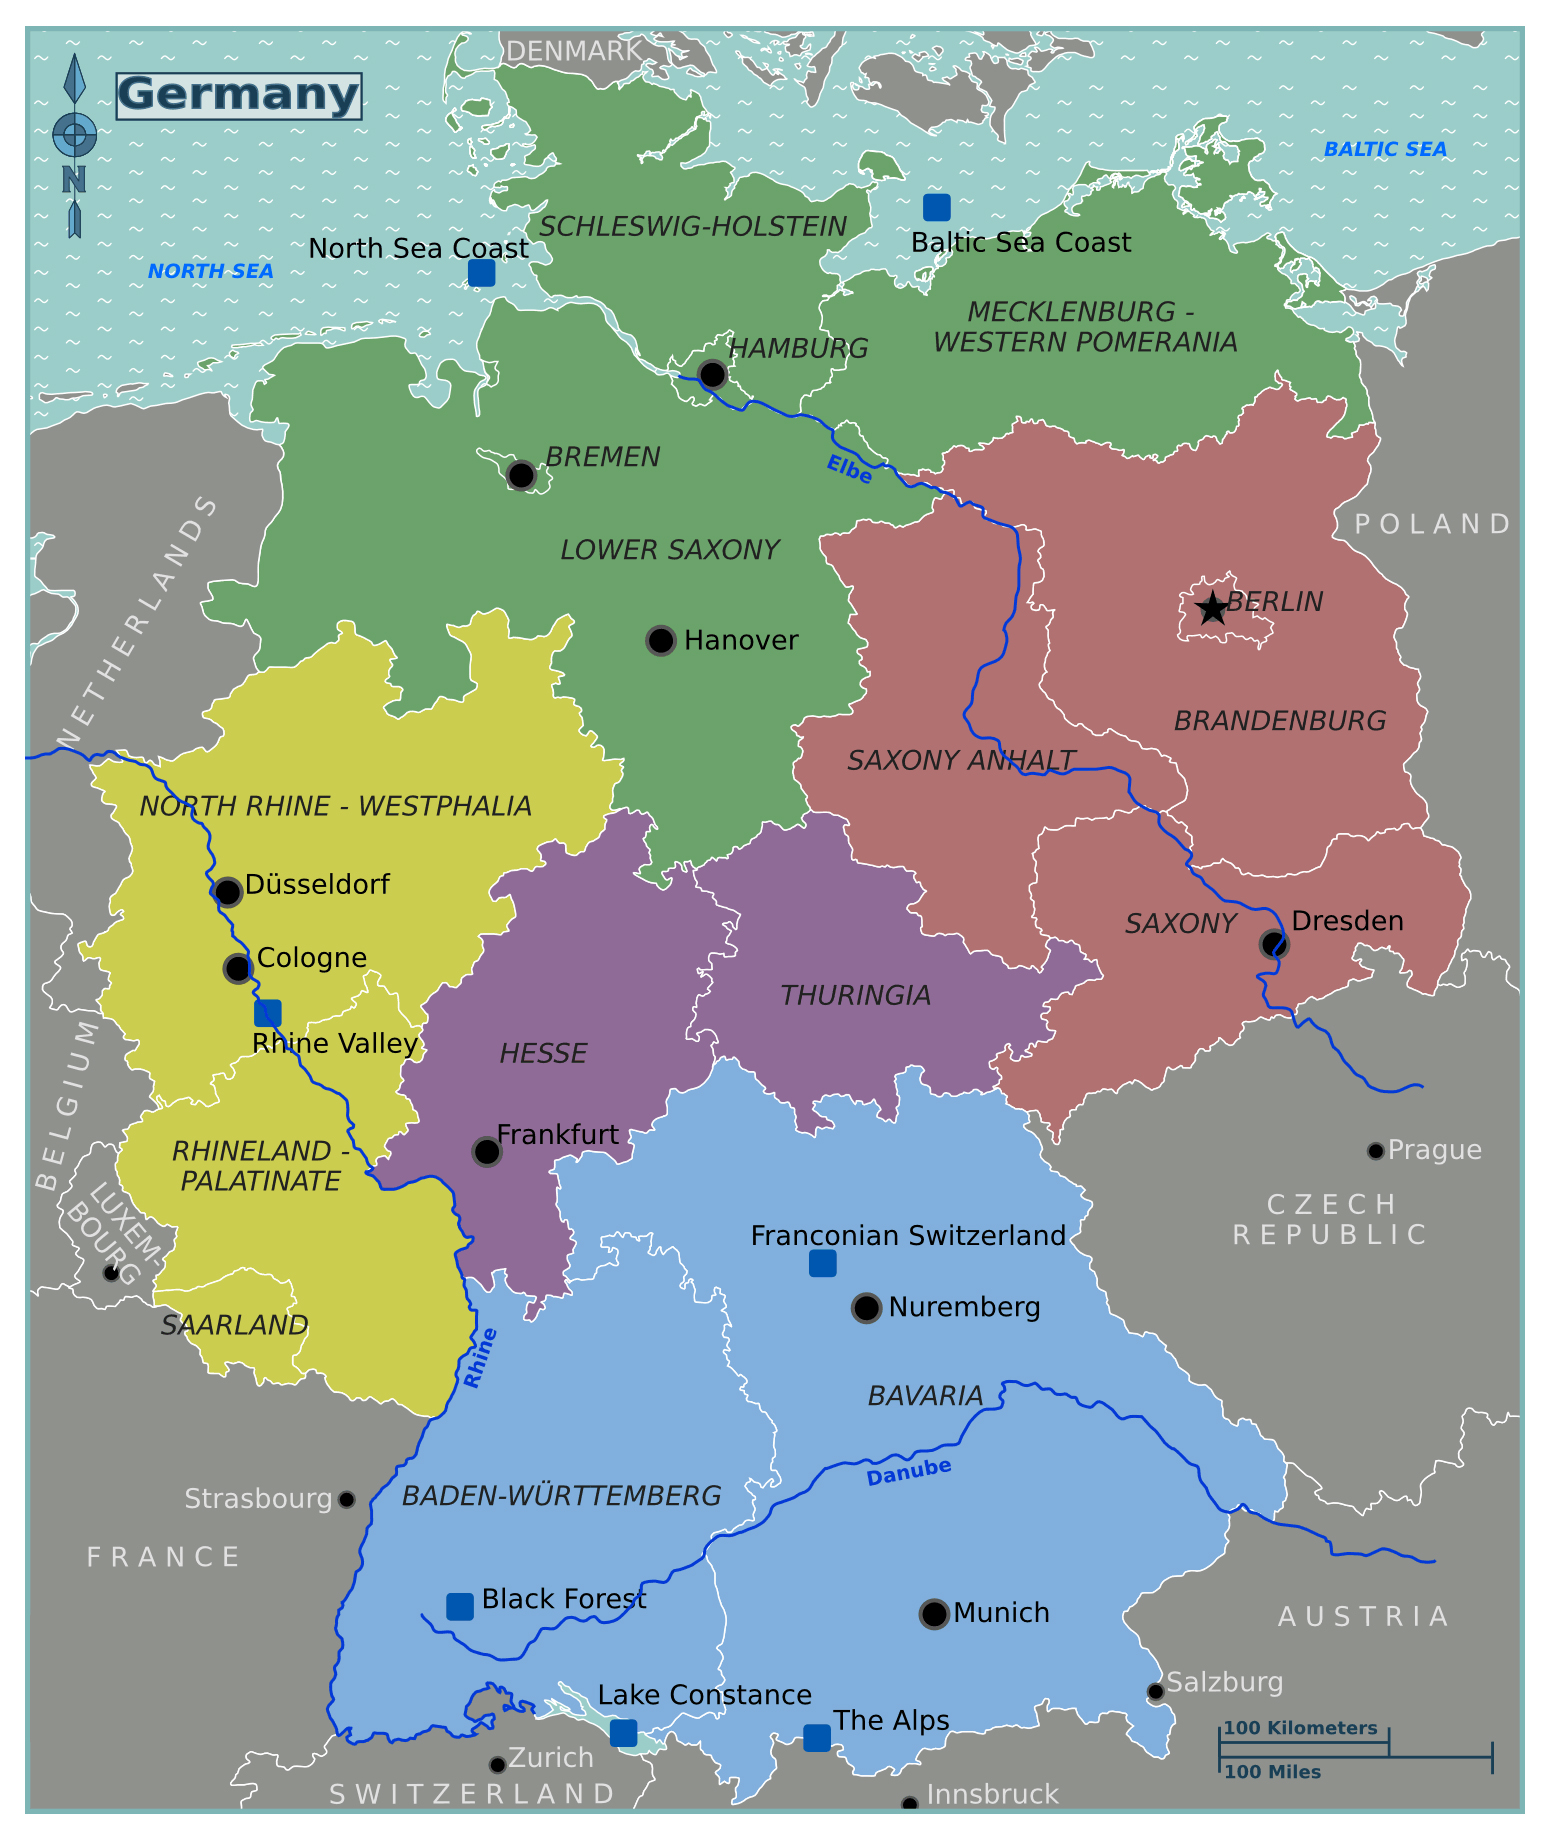 Large regions map of Germany Germany Europe Mapsland Maps of